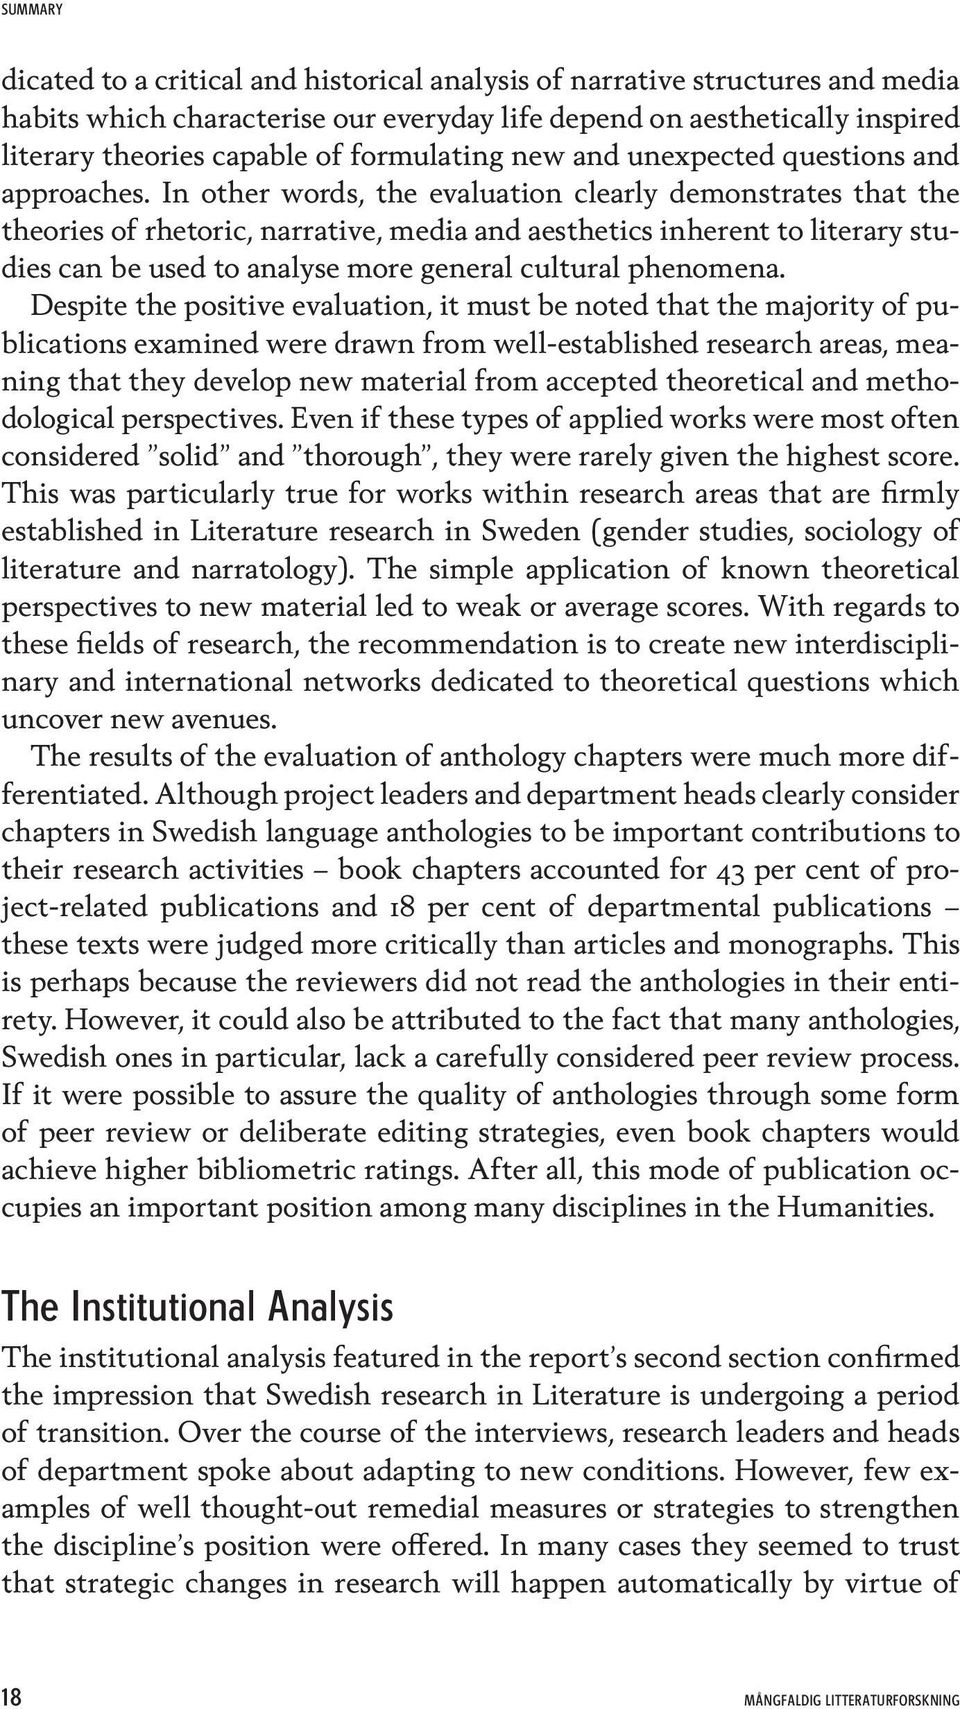 In other words, the evaluation clearly demonstrates that the theories of rhetoric, narrative, media and aesthetics inherent to literary studies can be used to analyse more general cultural phenomena.